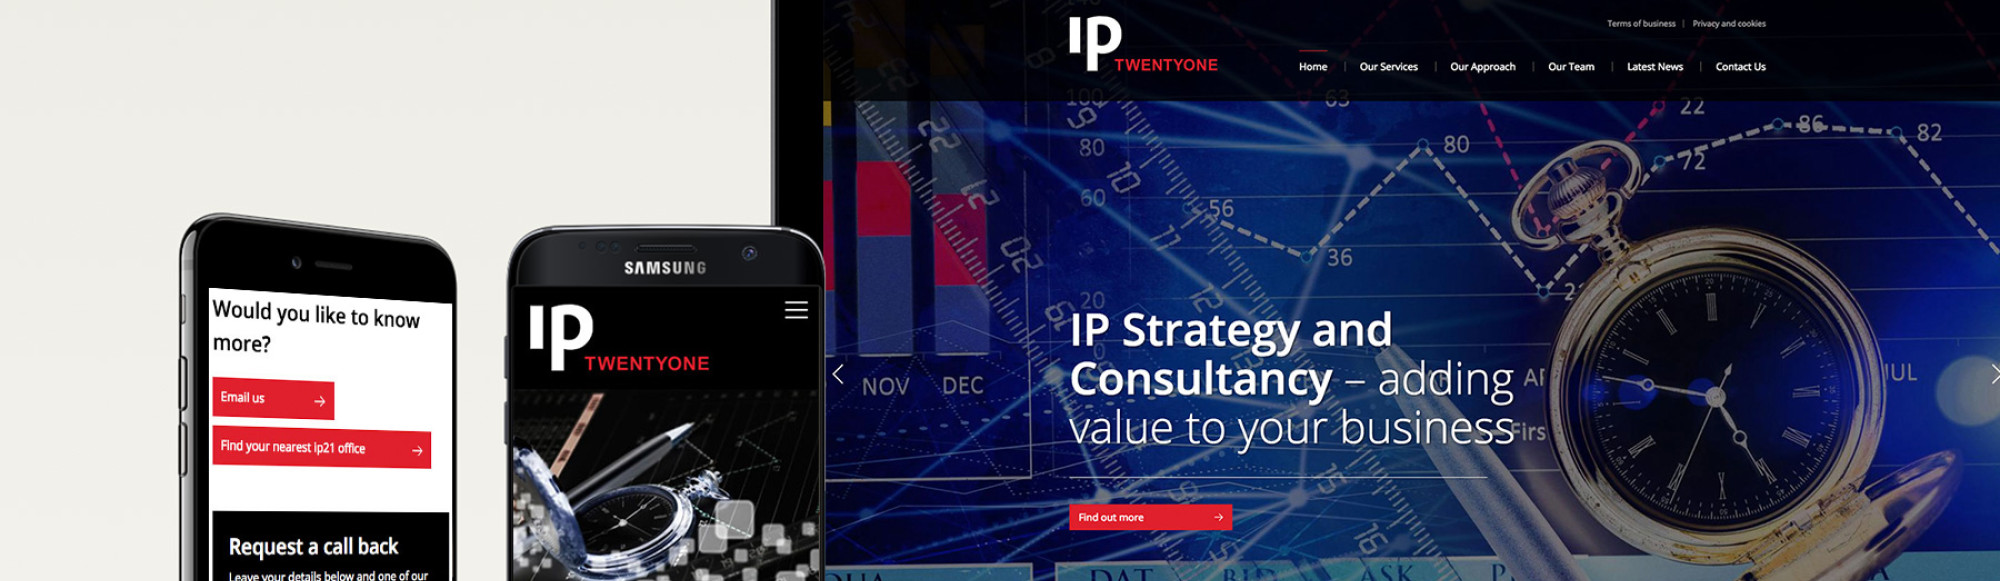 ip21 website design